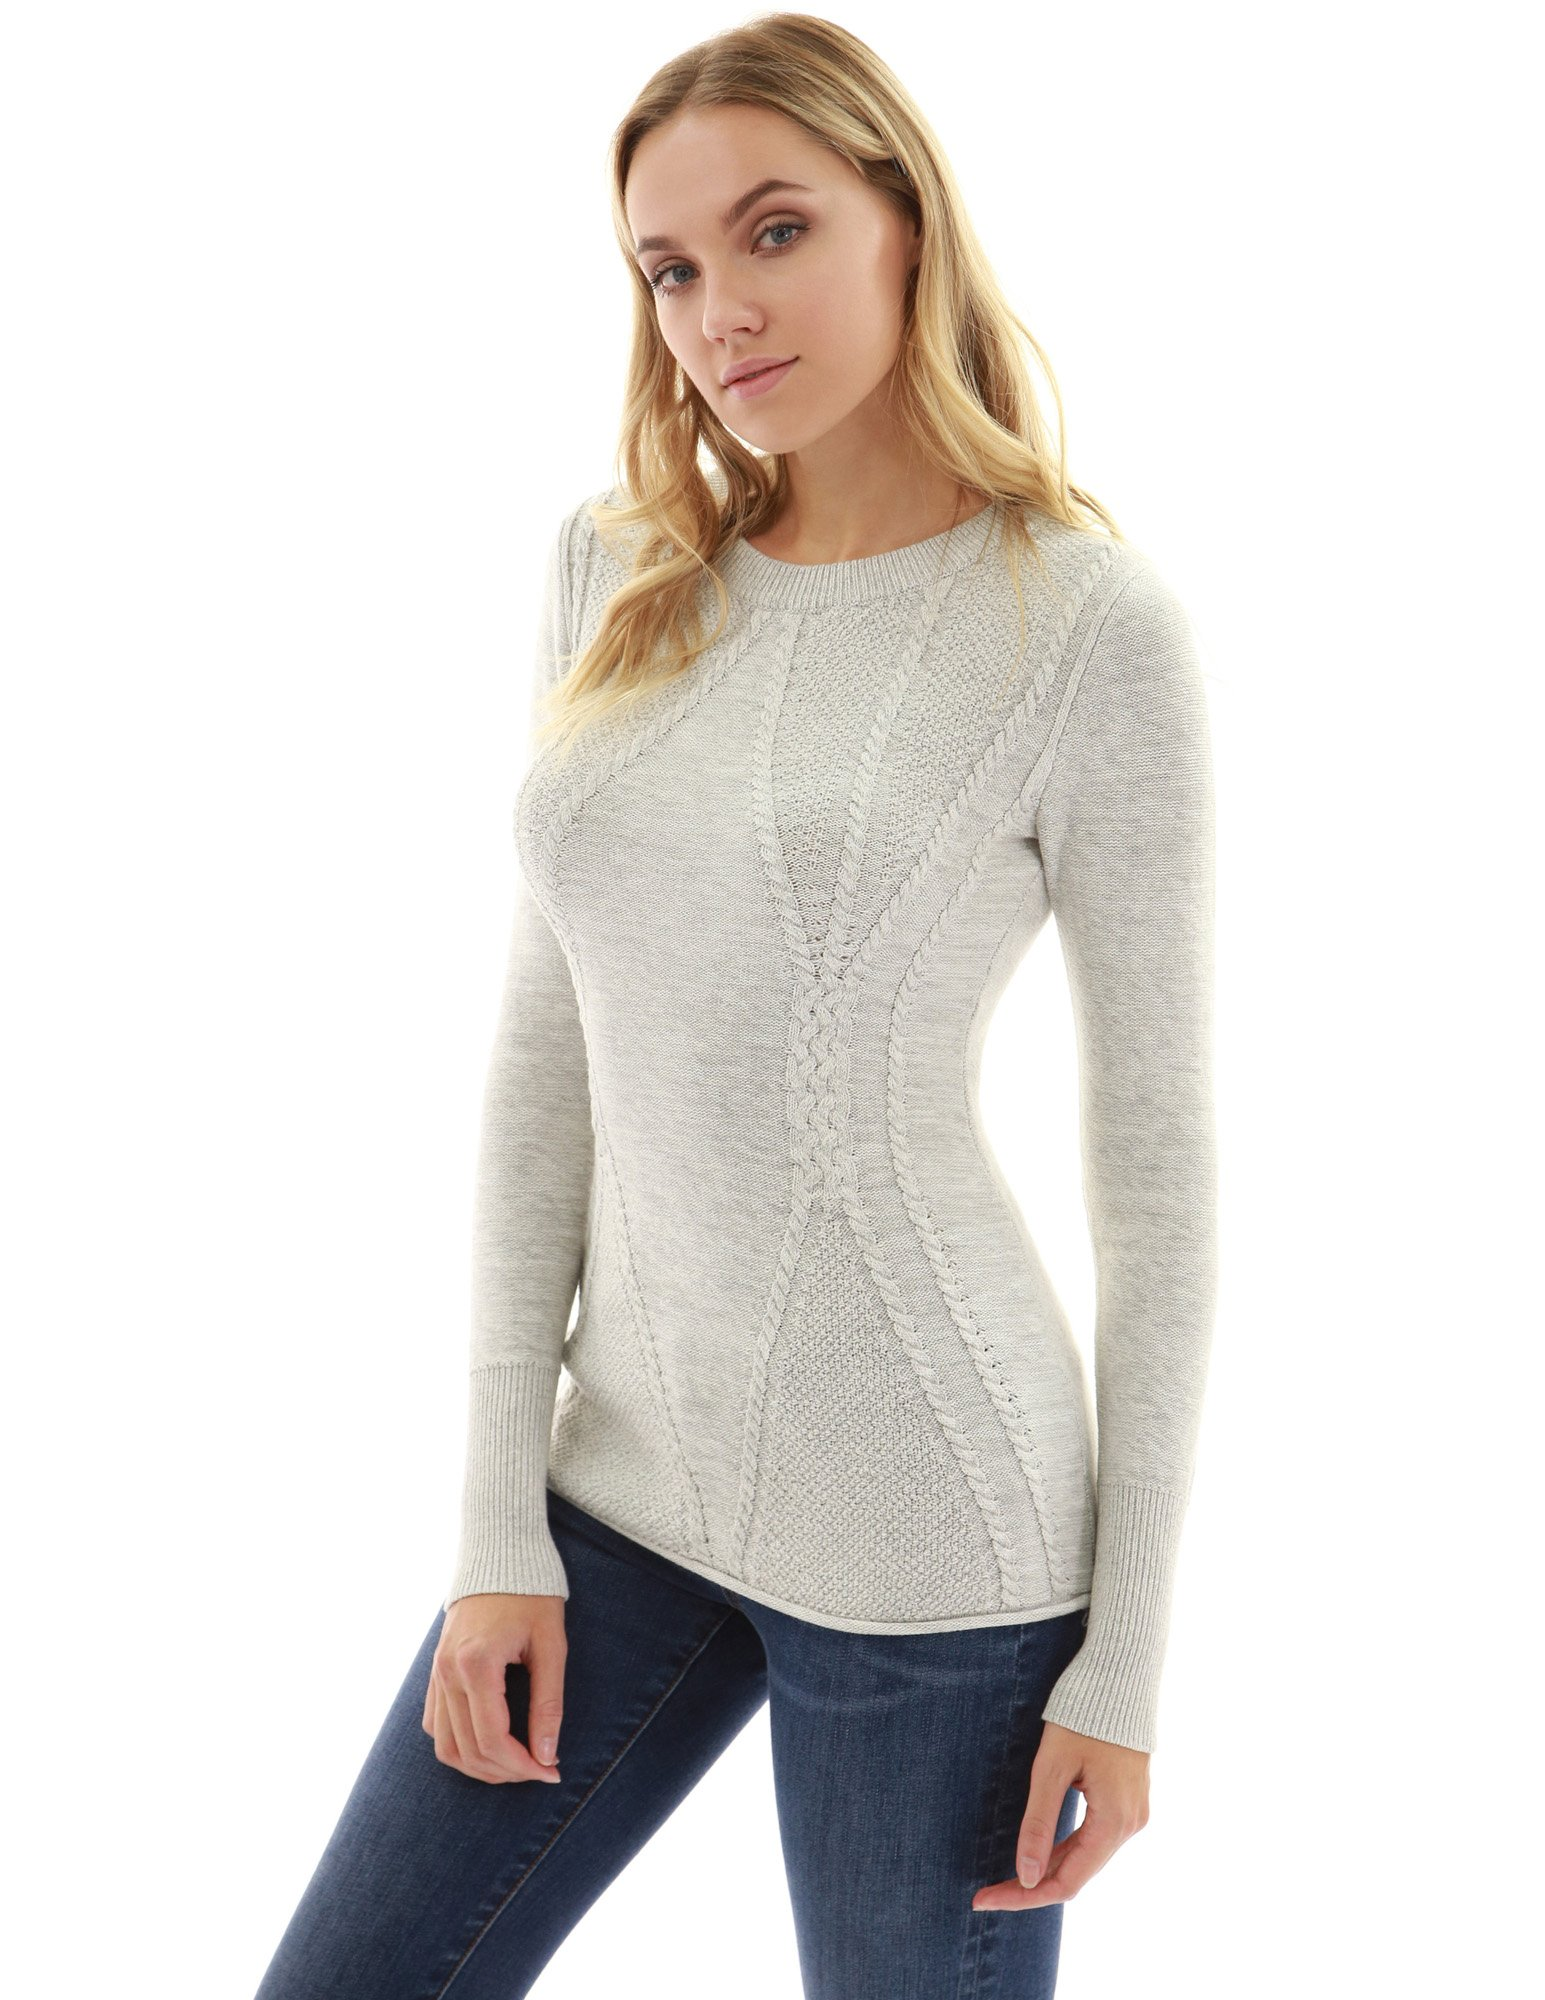 PattyBoutik Women Cotton Blend Crewneck Cable Knit Sweater (Heather Light Gray Small)